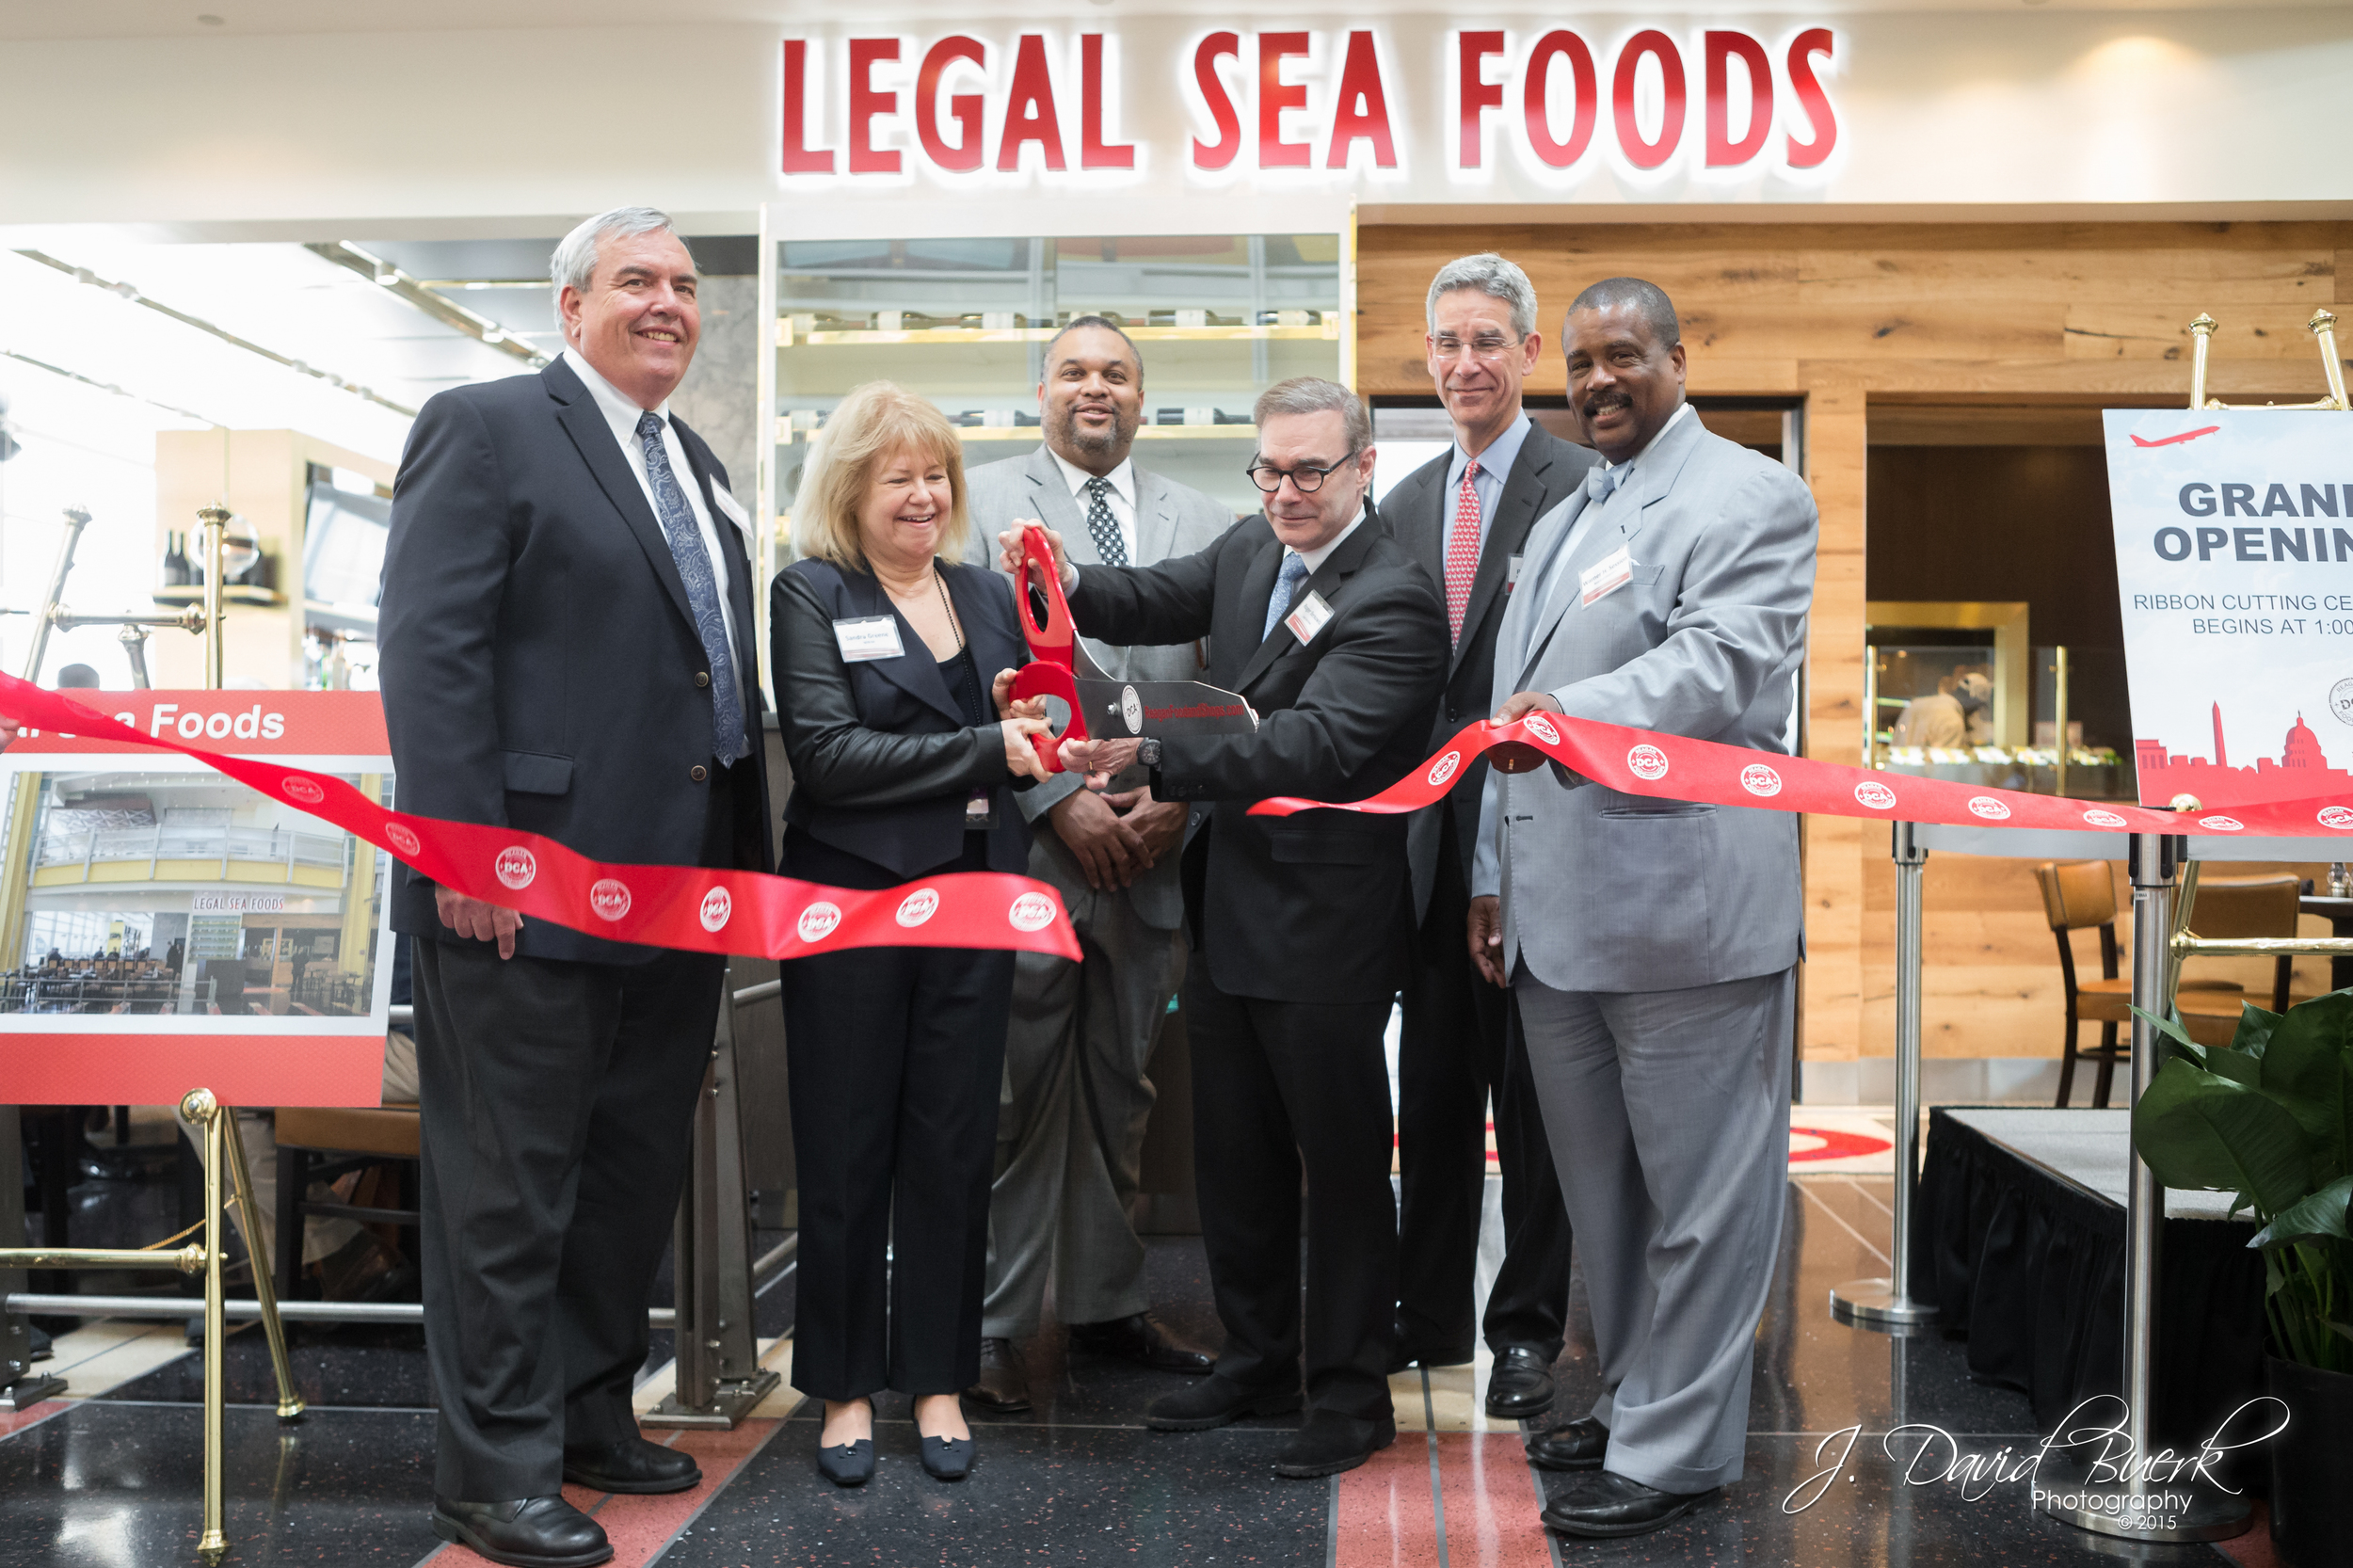 Legal Sea Foods Grand Opening and Ribbon Cutting at Ronald Reagan National Airport.